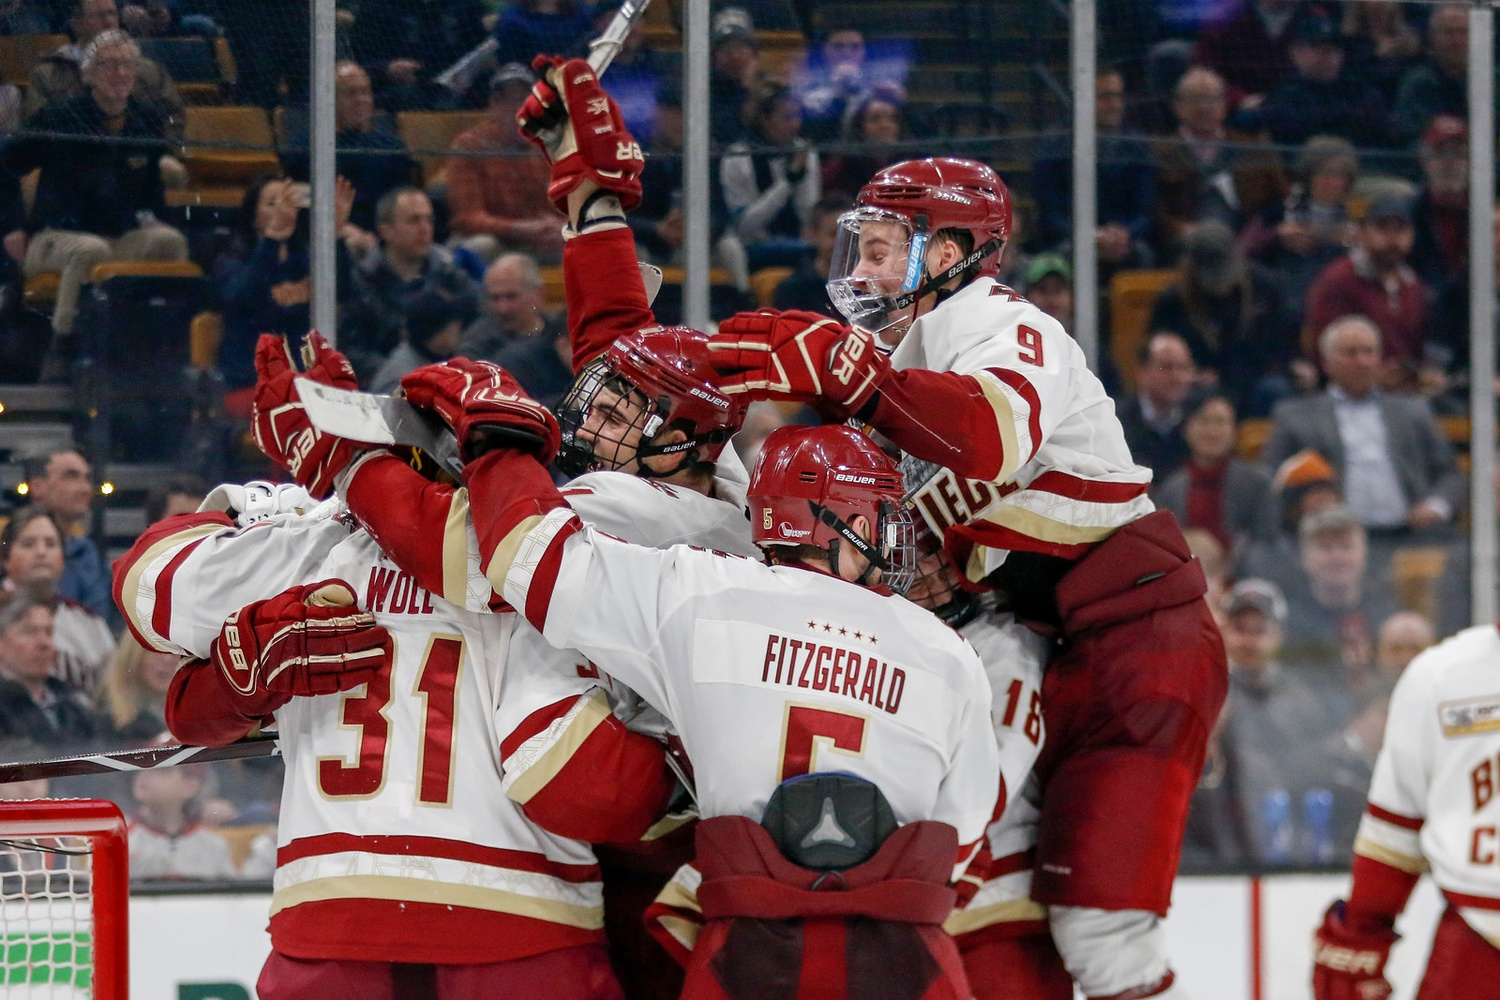 Since claiming the Beanpot in 2017, Harvard has not won a semifinal matchup. Last season, Boston College sent the Crimson packing.